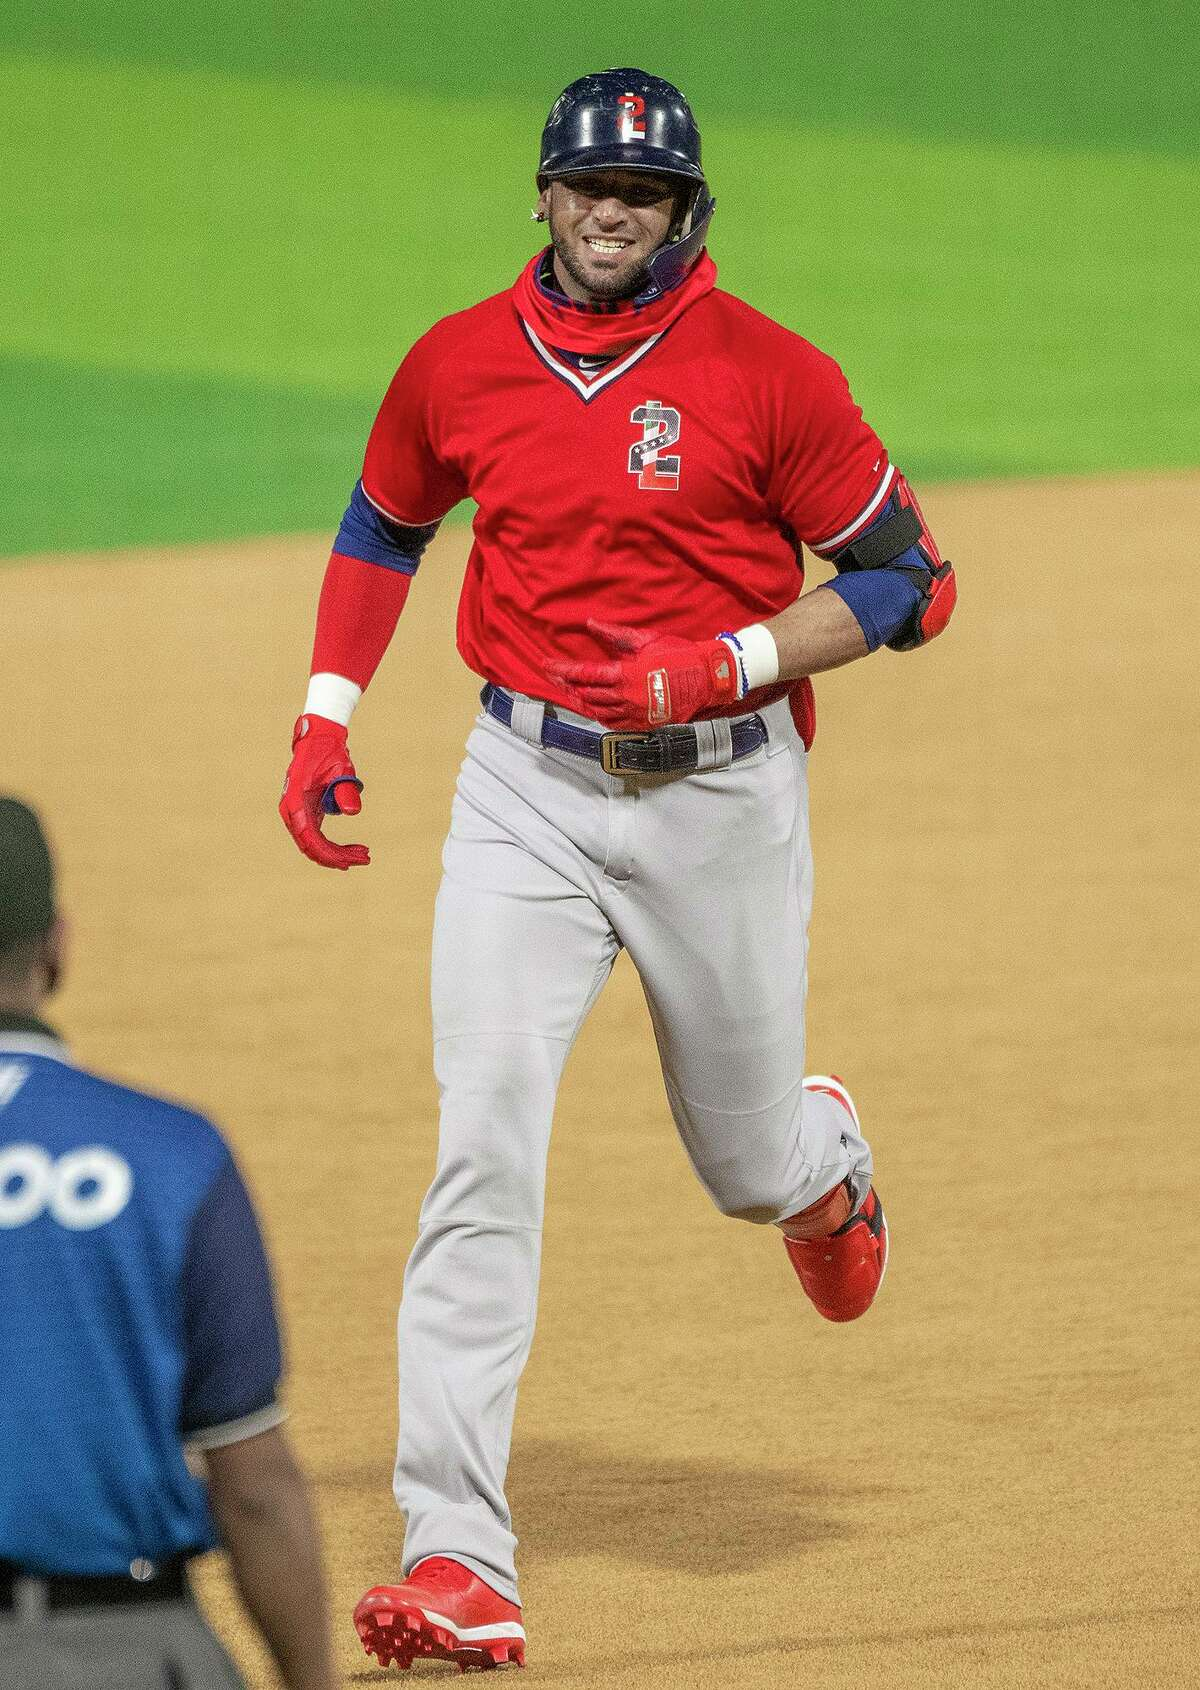 The Tecolotes Dos Laredos released starting outfielder Paulo Orlando, pictured, and pitcher Jose Oyervides on Friday.